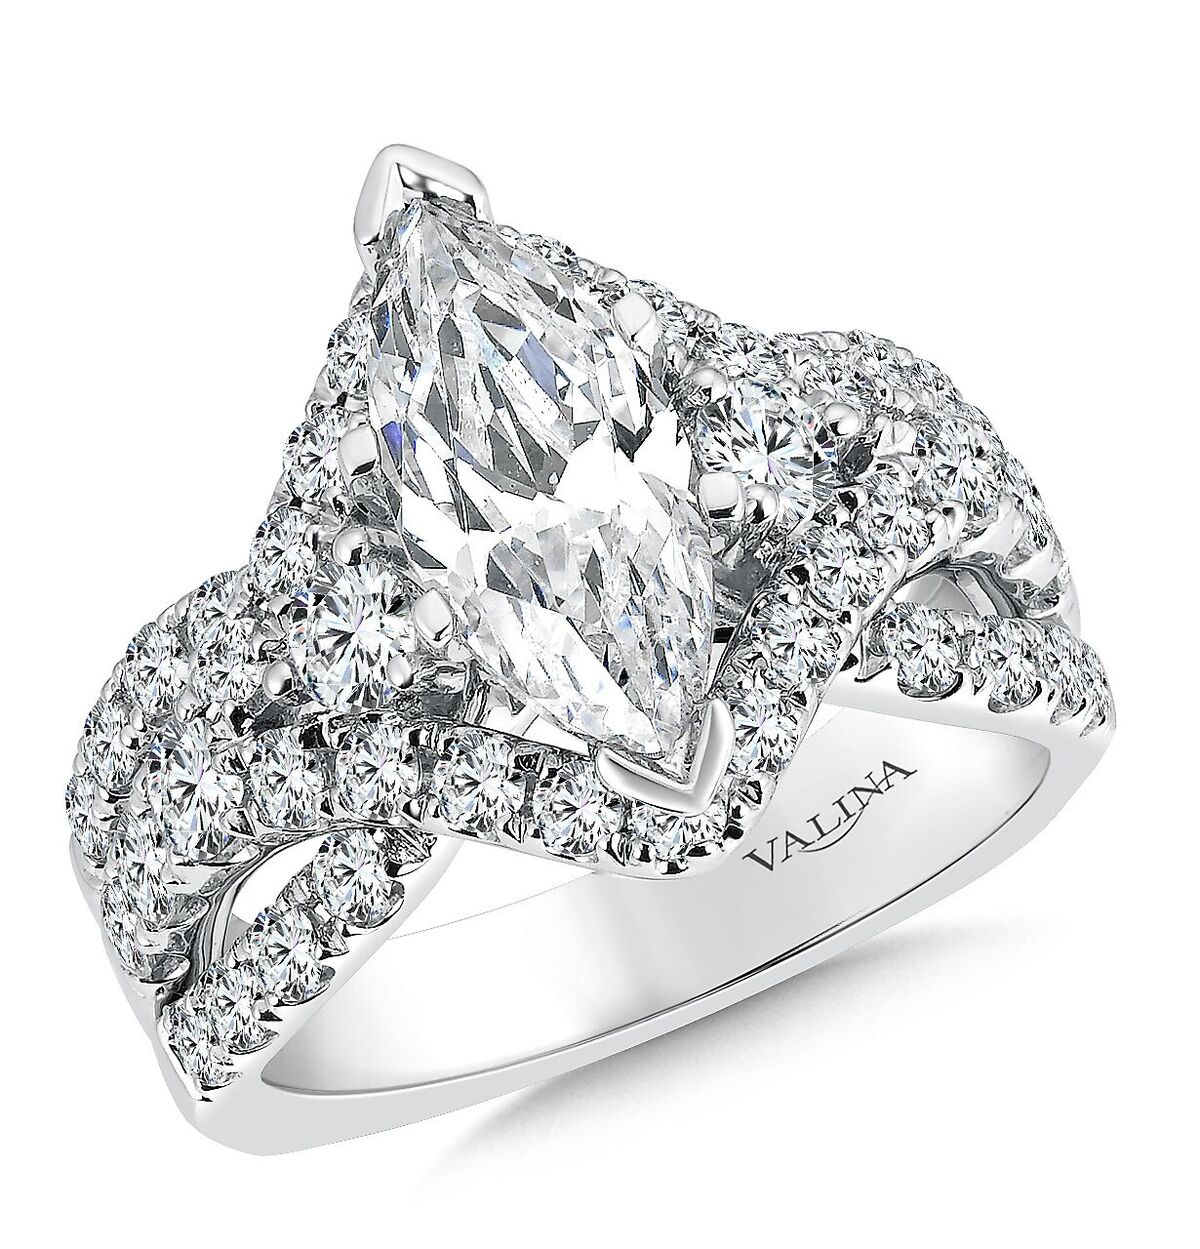 Marquise Diamond Engagement Ring - Wholesale Engagement Rings